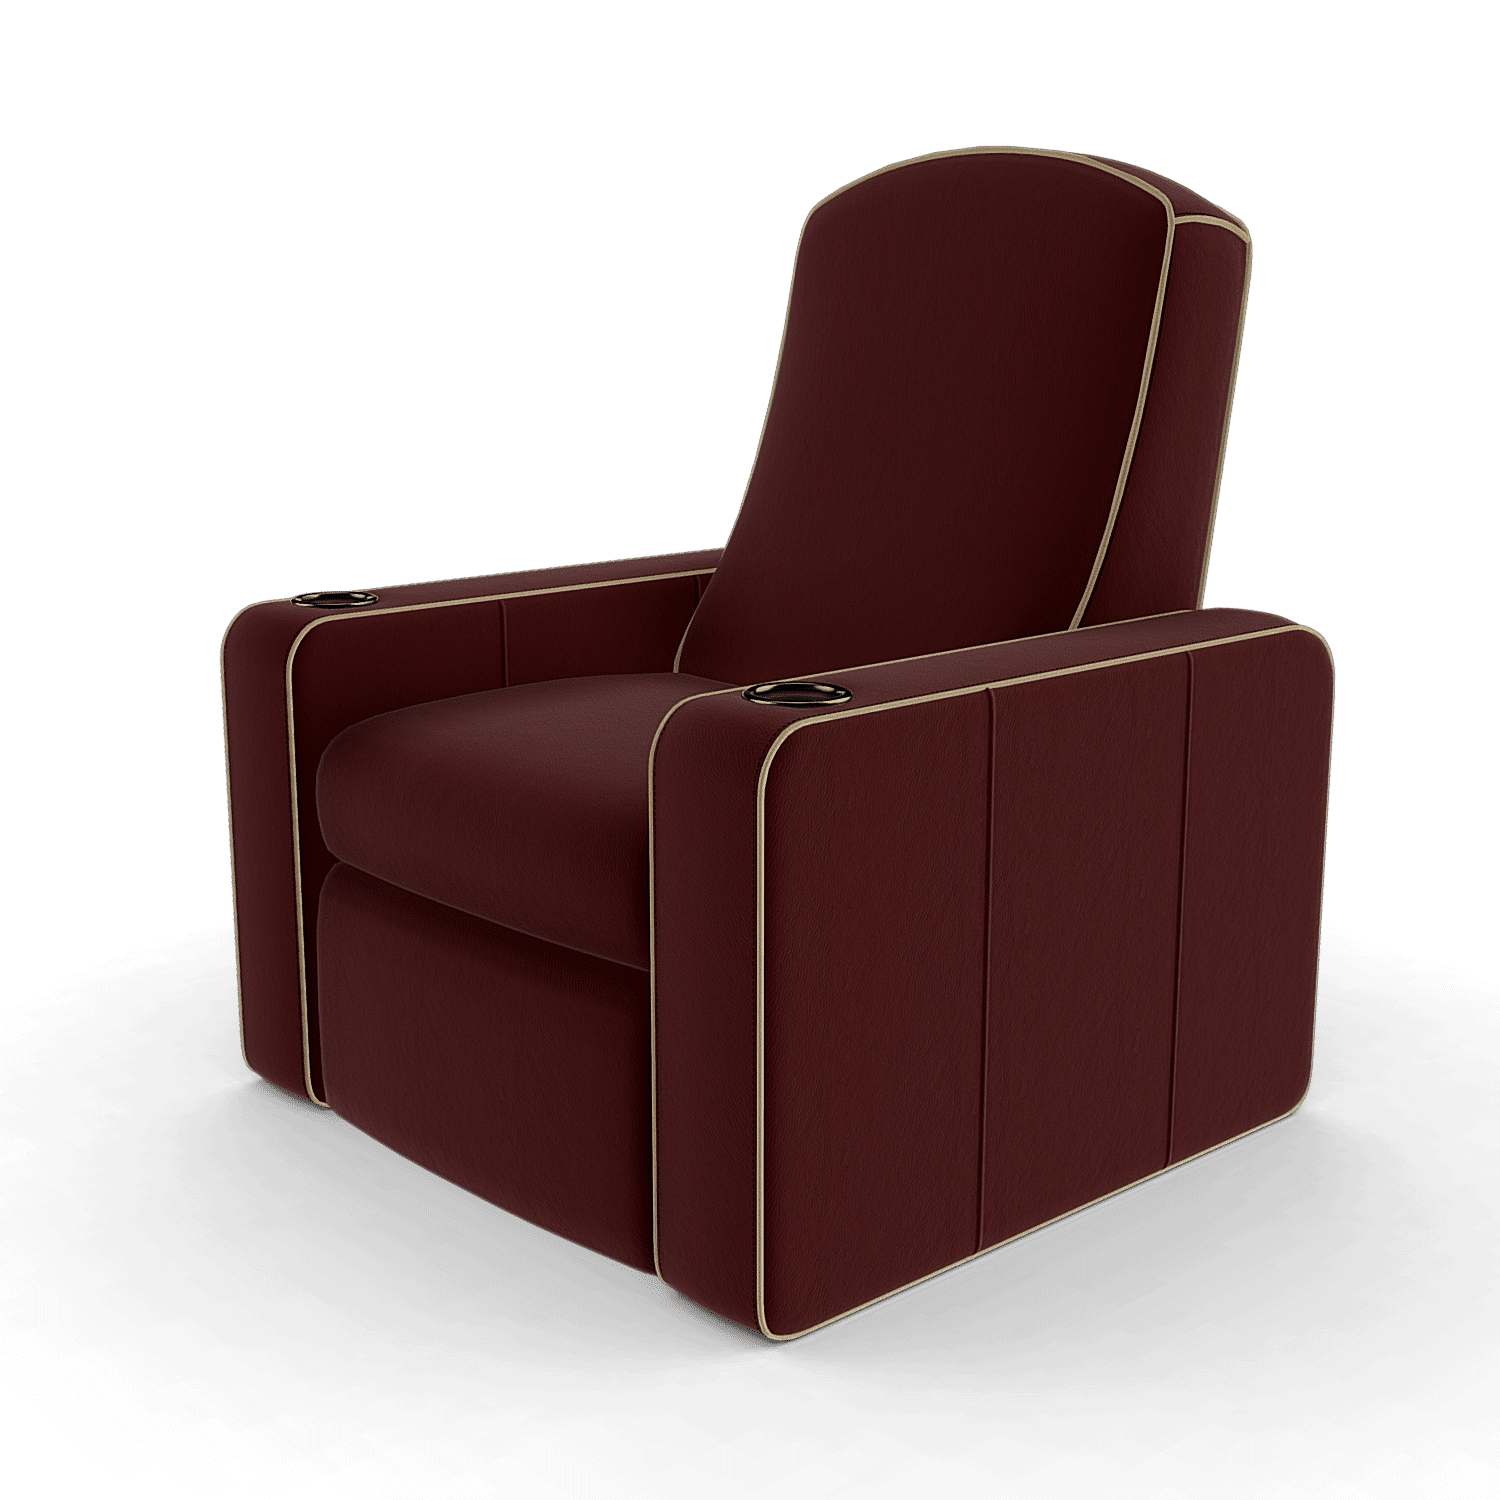 Home cinema seats n5 red